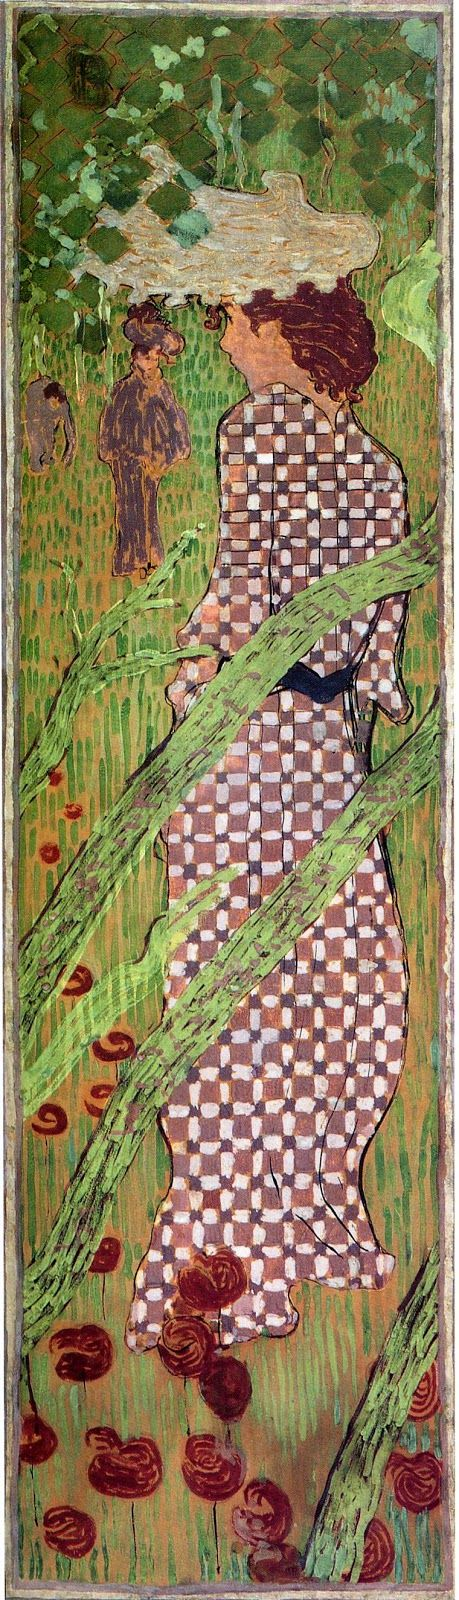 Pierre Bonnard  (1867-1947) - Woman in a checked dress, 1891, Musee d'Orsay, Paros.